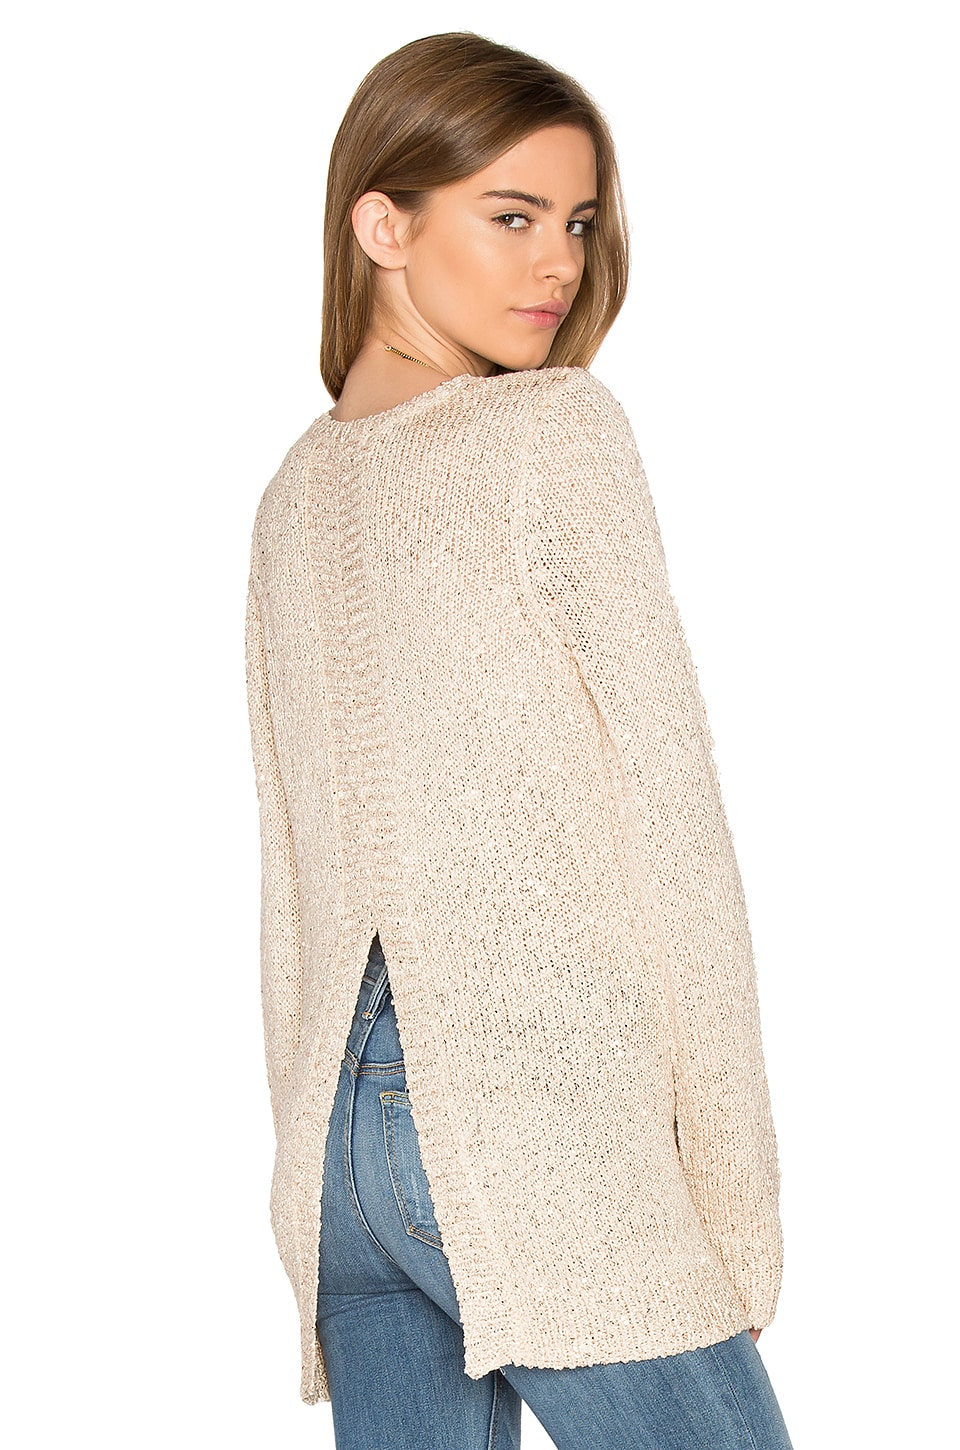 BB Dakota Jack By BB Dakota Warrane Sweater in Champagne